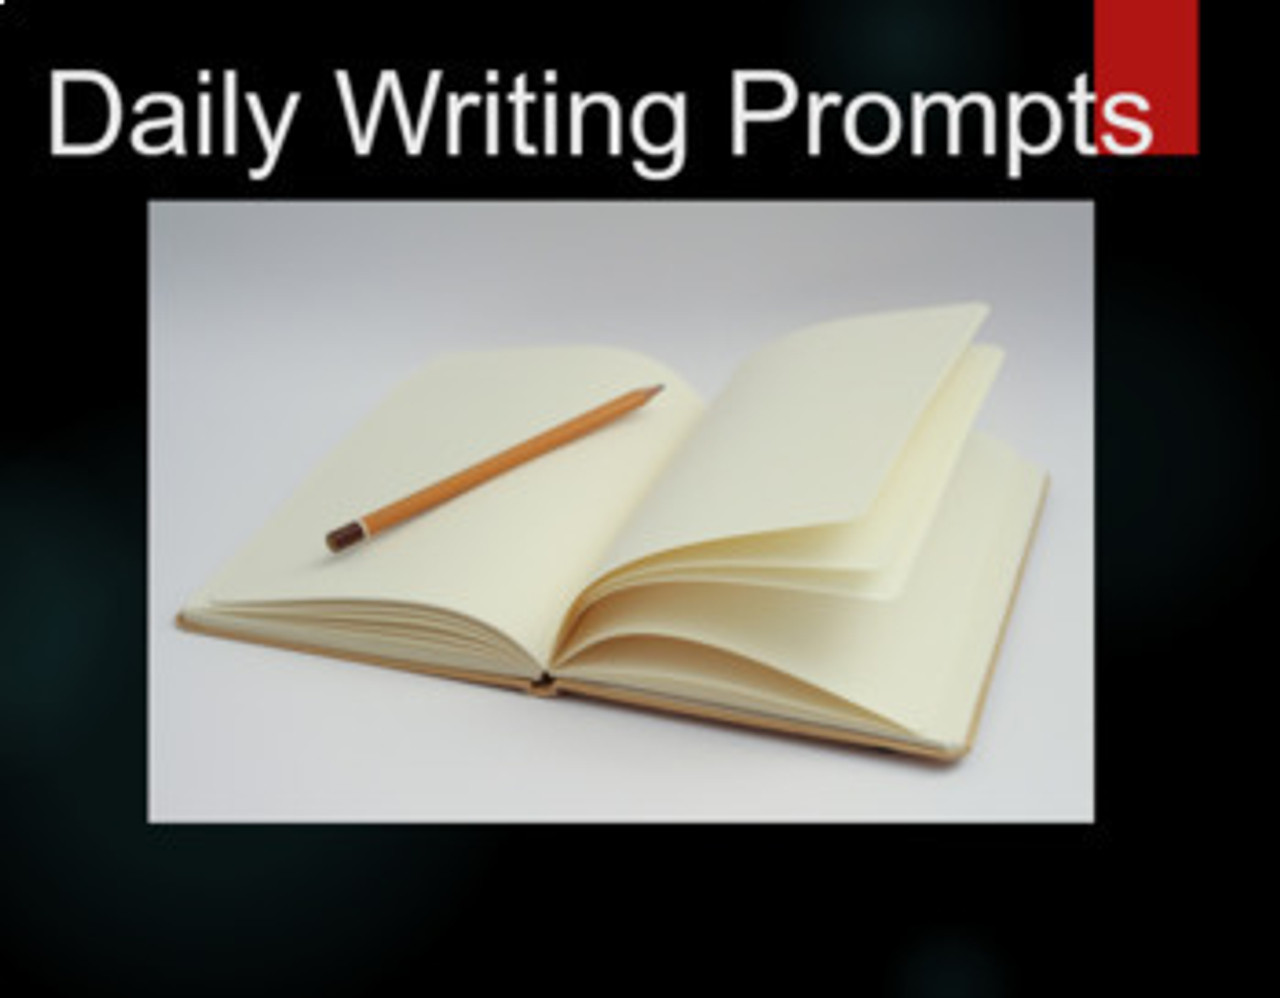 Daily writing prompts for multiple grade levels.